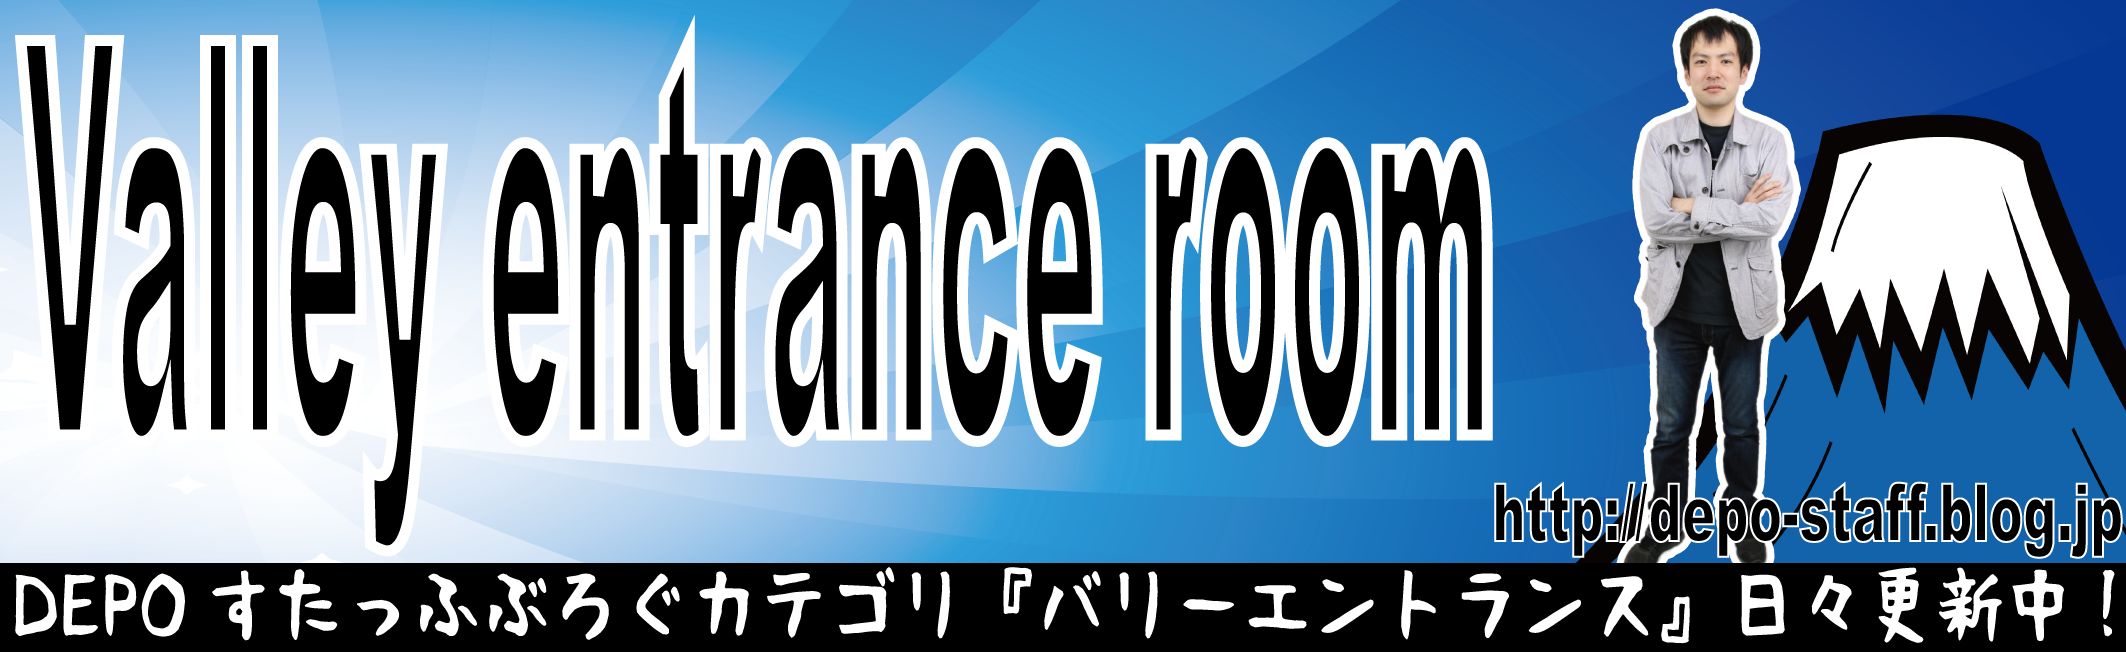 Valley entrance roomISKYDEPOスタッフブログ